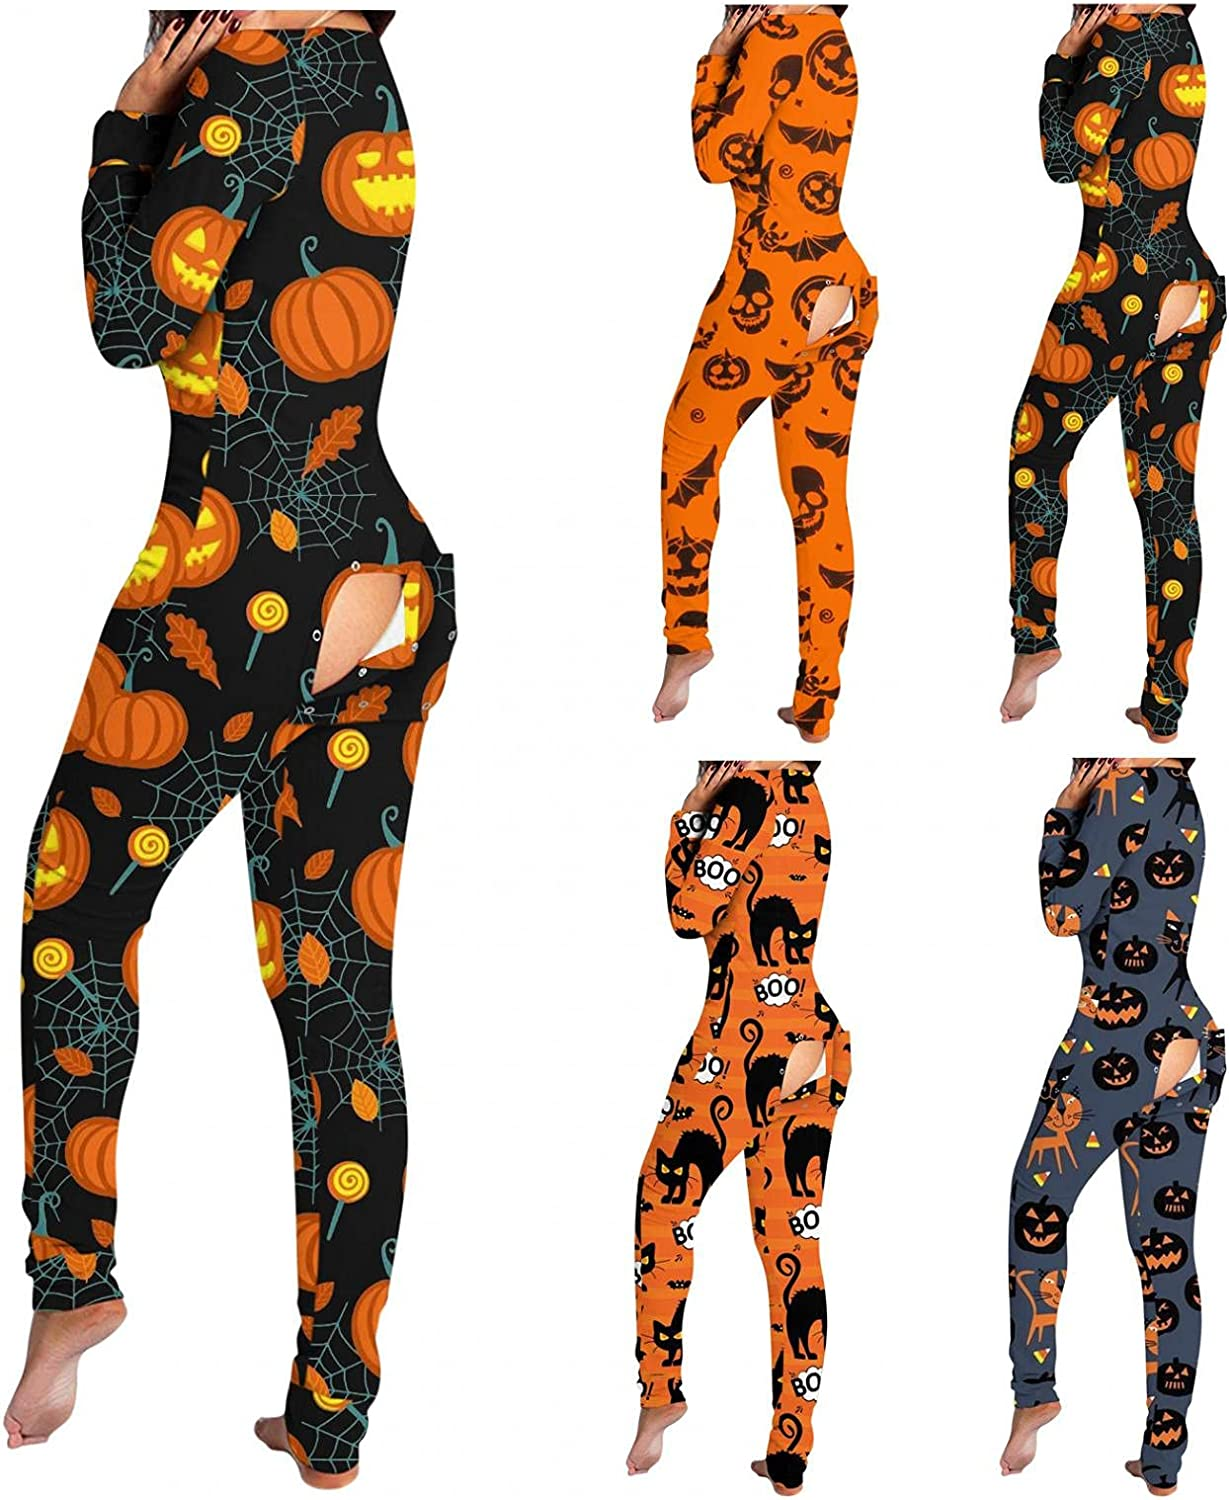 Lingbing Halloween Jumpsuits for Women, Skull Pumpkin Print Bodycon Bodysuits V Neck Long Sleeve Pajamas with Butt Flap